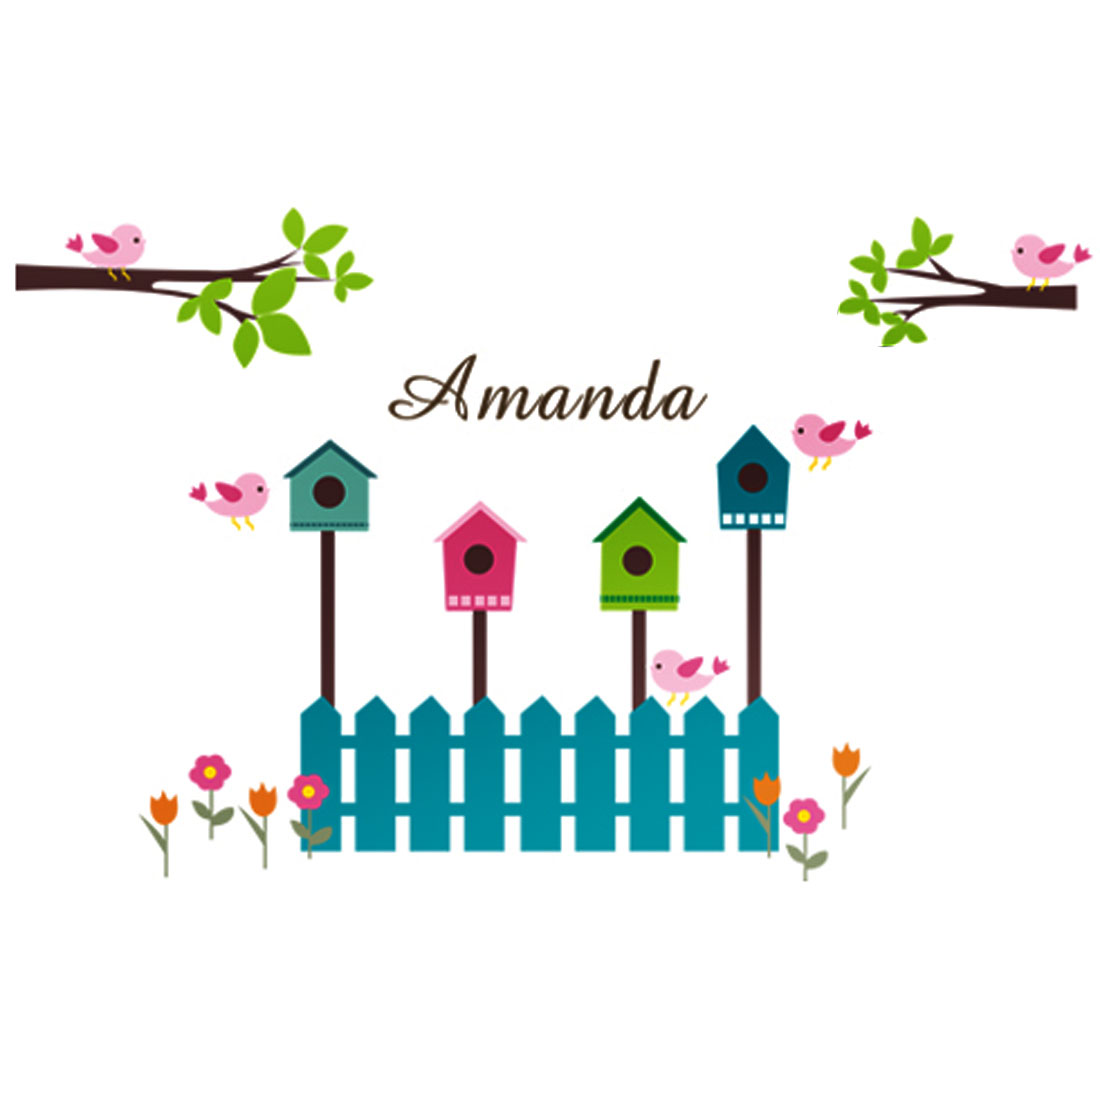 Birdhouse Pattern Self-adhesive Removable Wall Sticker Paper Mural Ornament